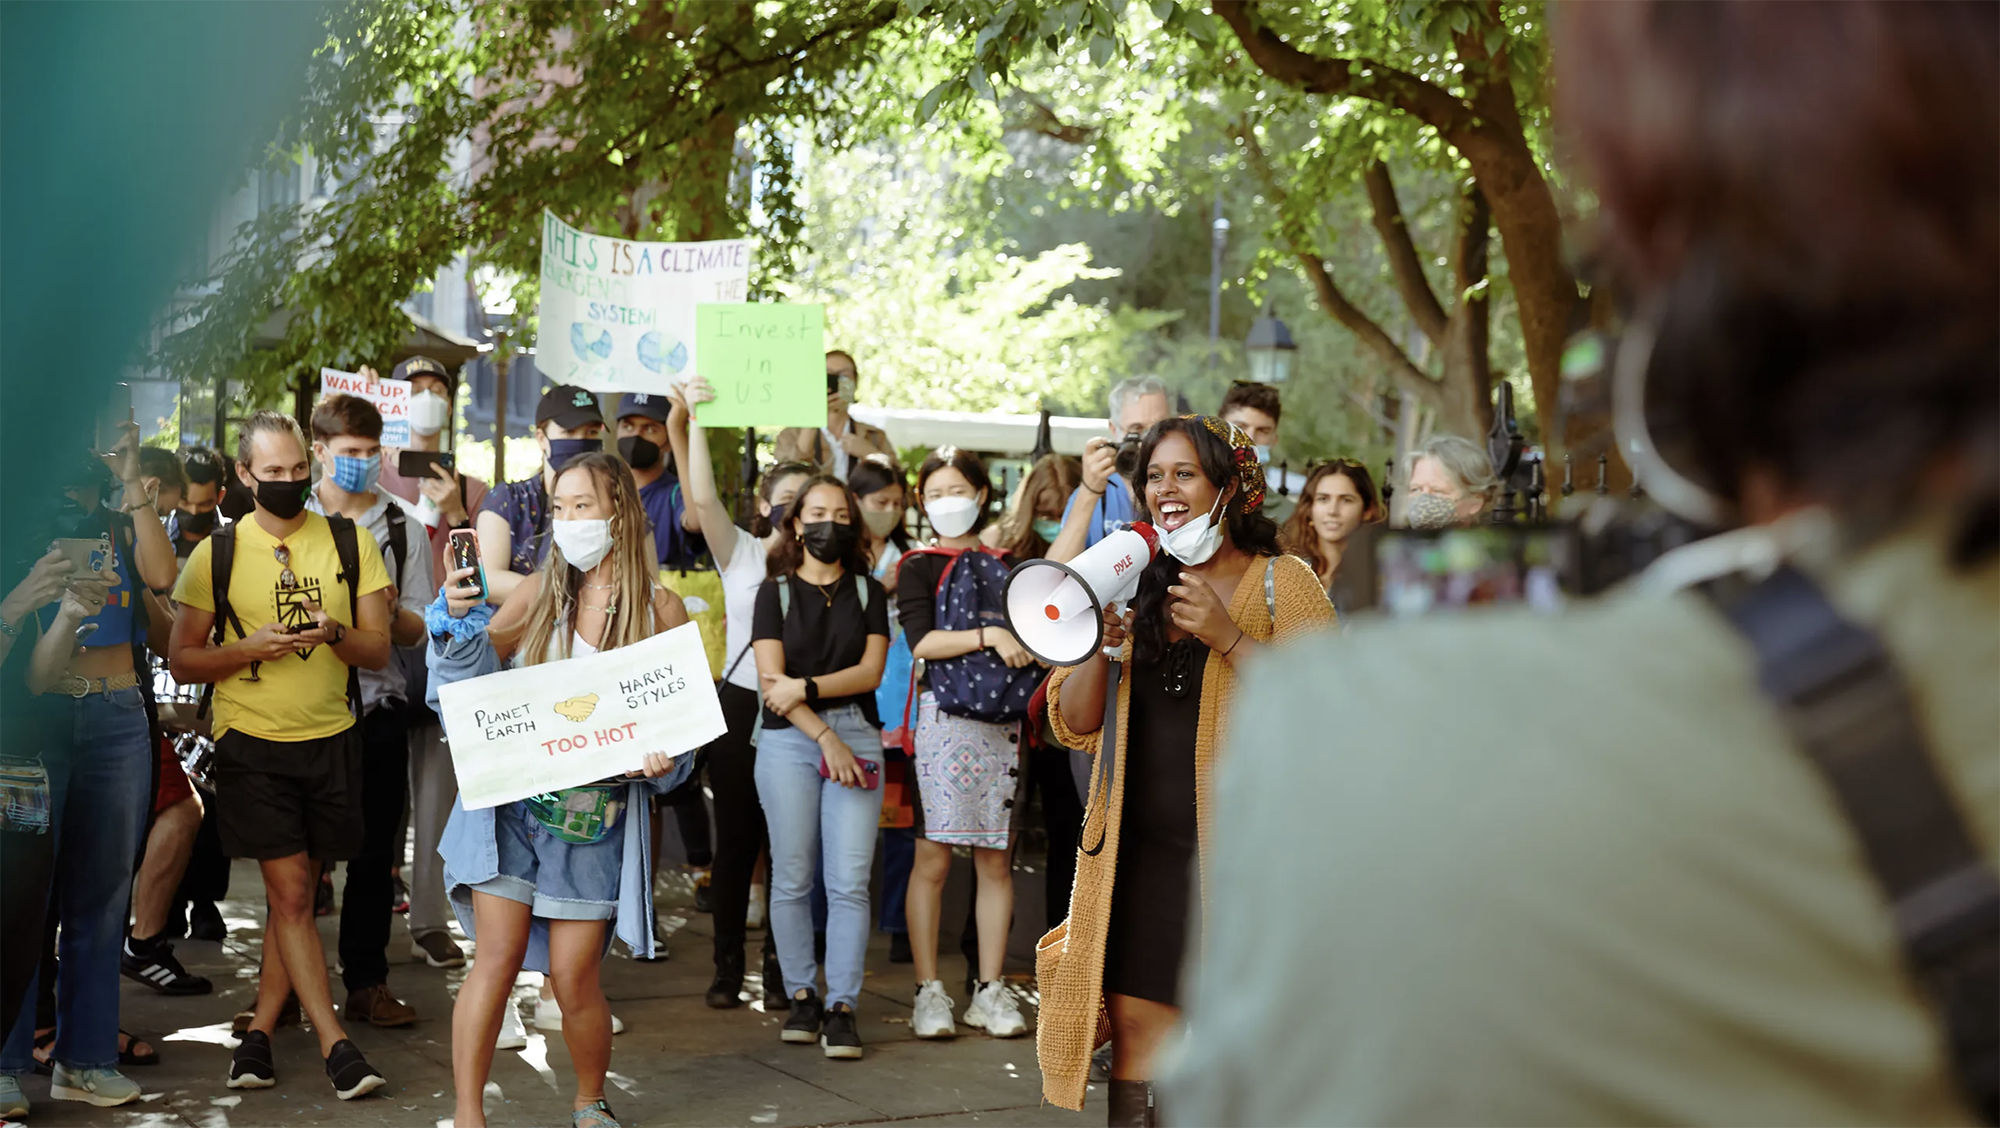 Crowd of people, most wearing masks, hold up signs, with one person in the foreground with a loudspeaker